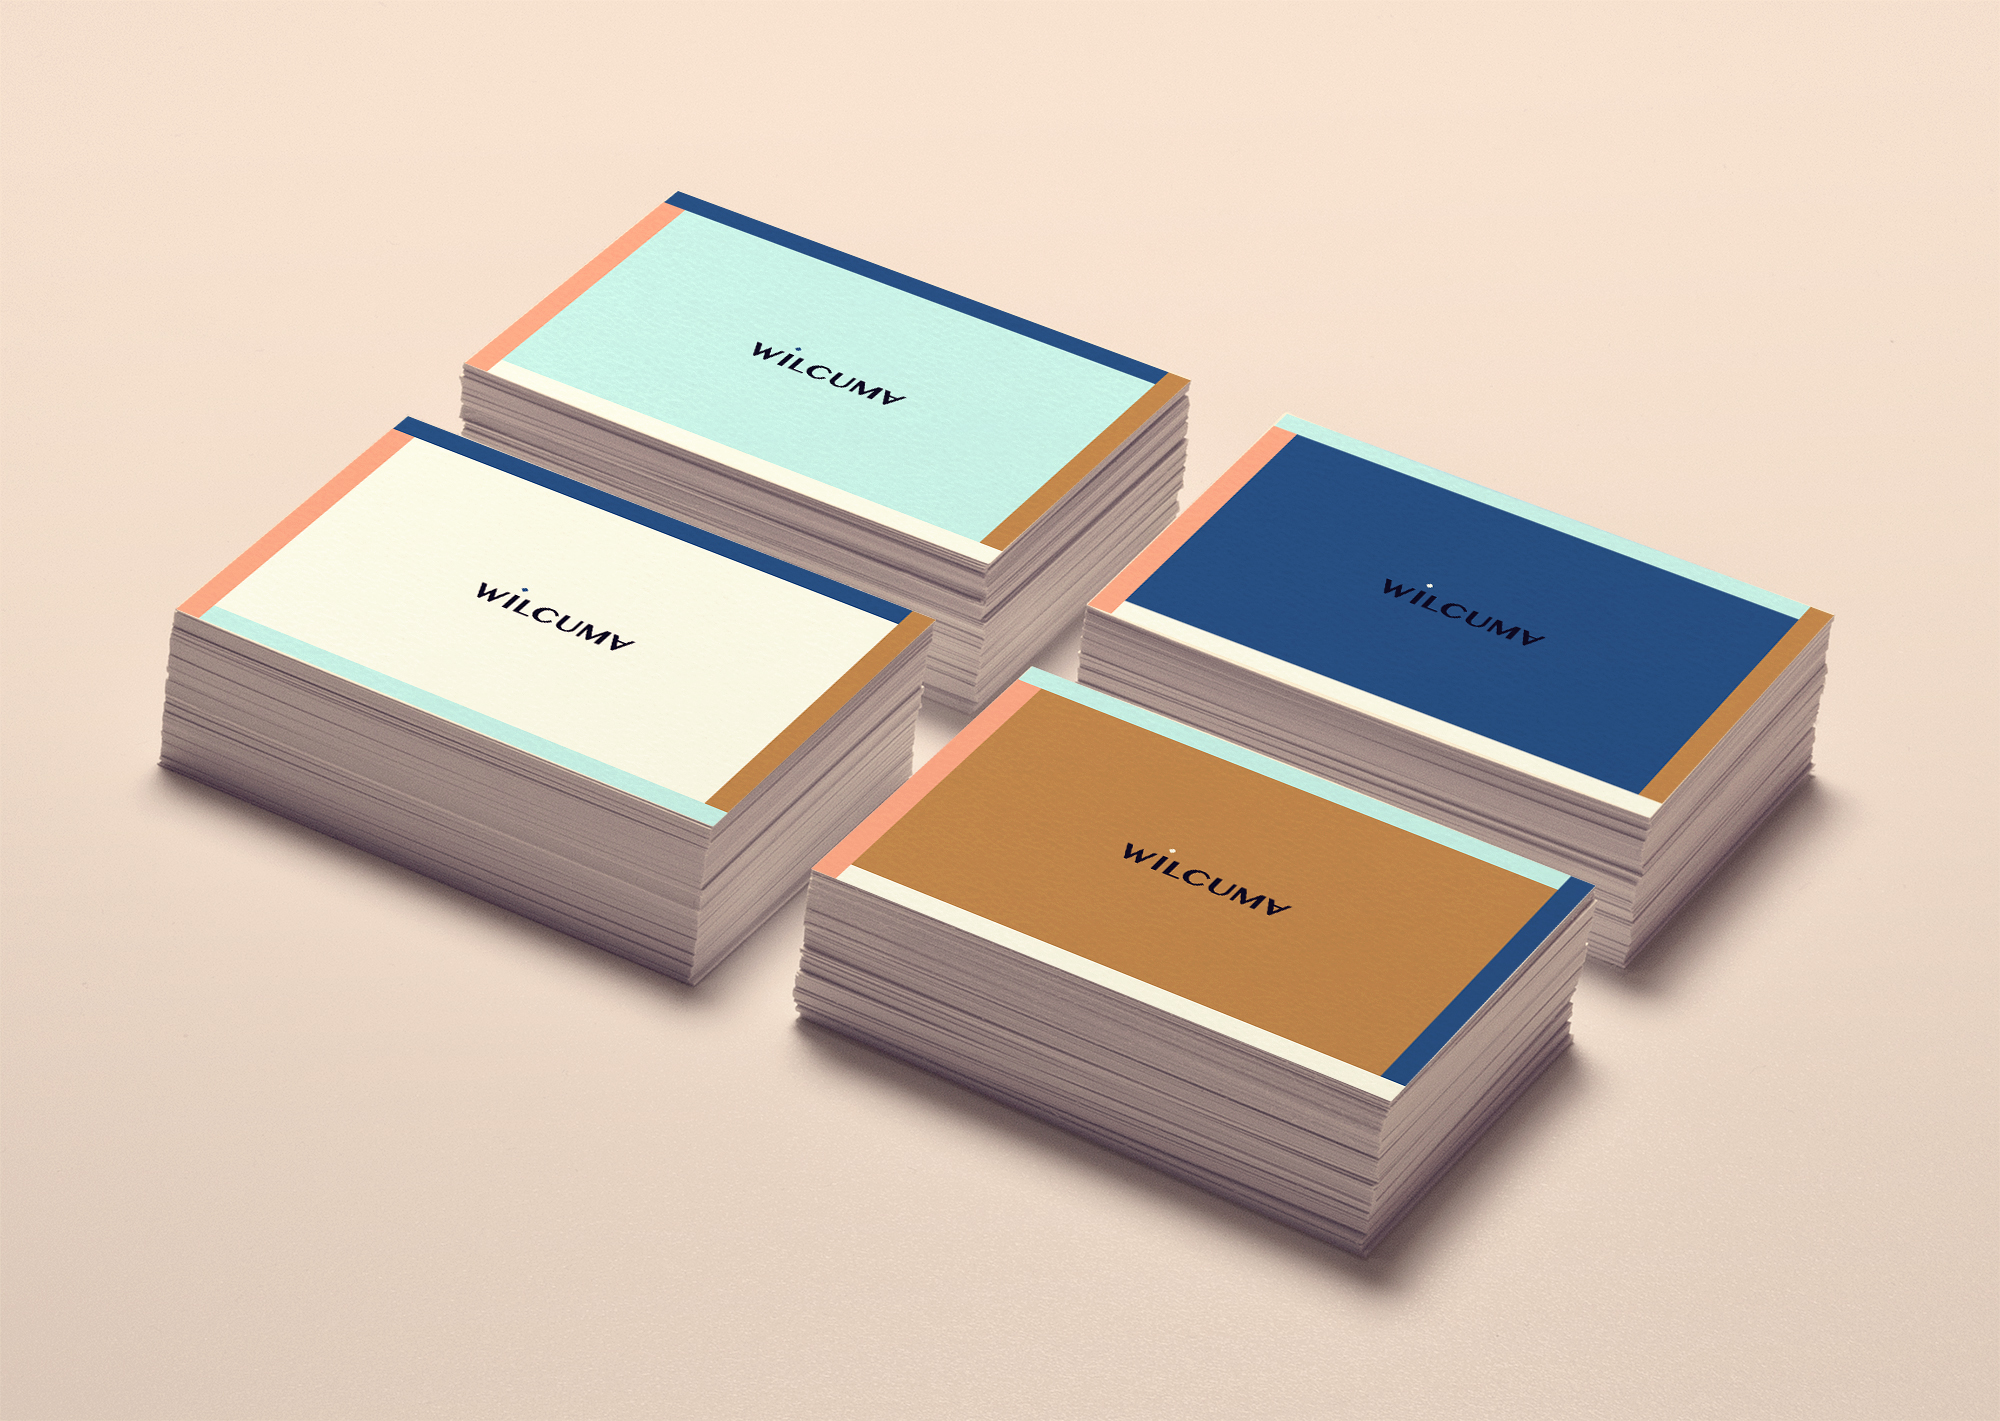 stacks of Wilcuma business cards